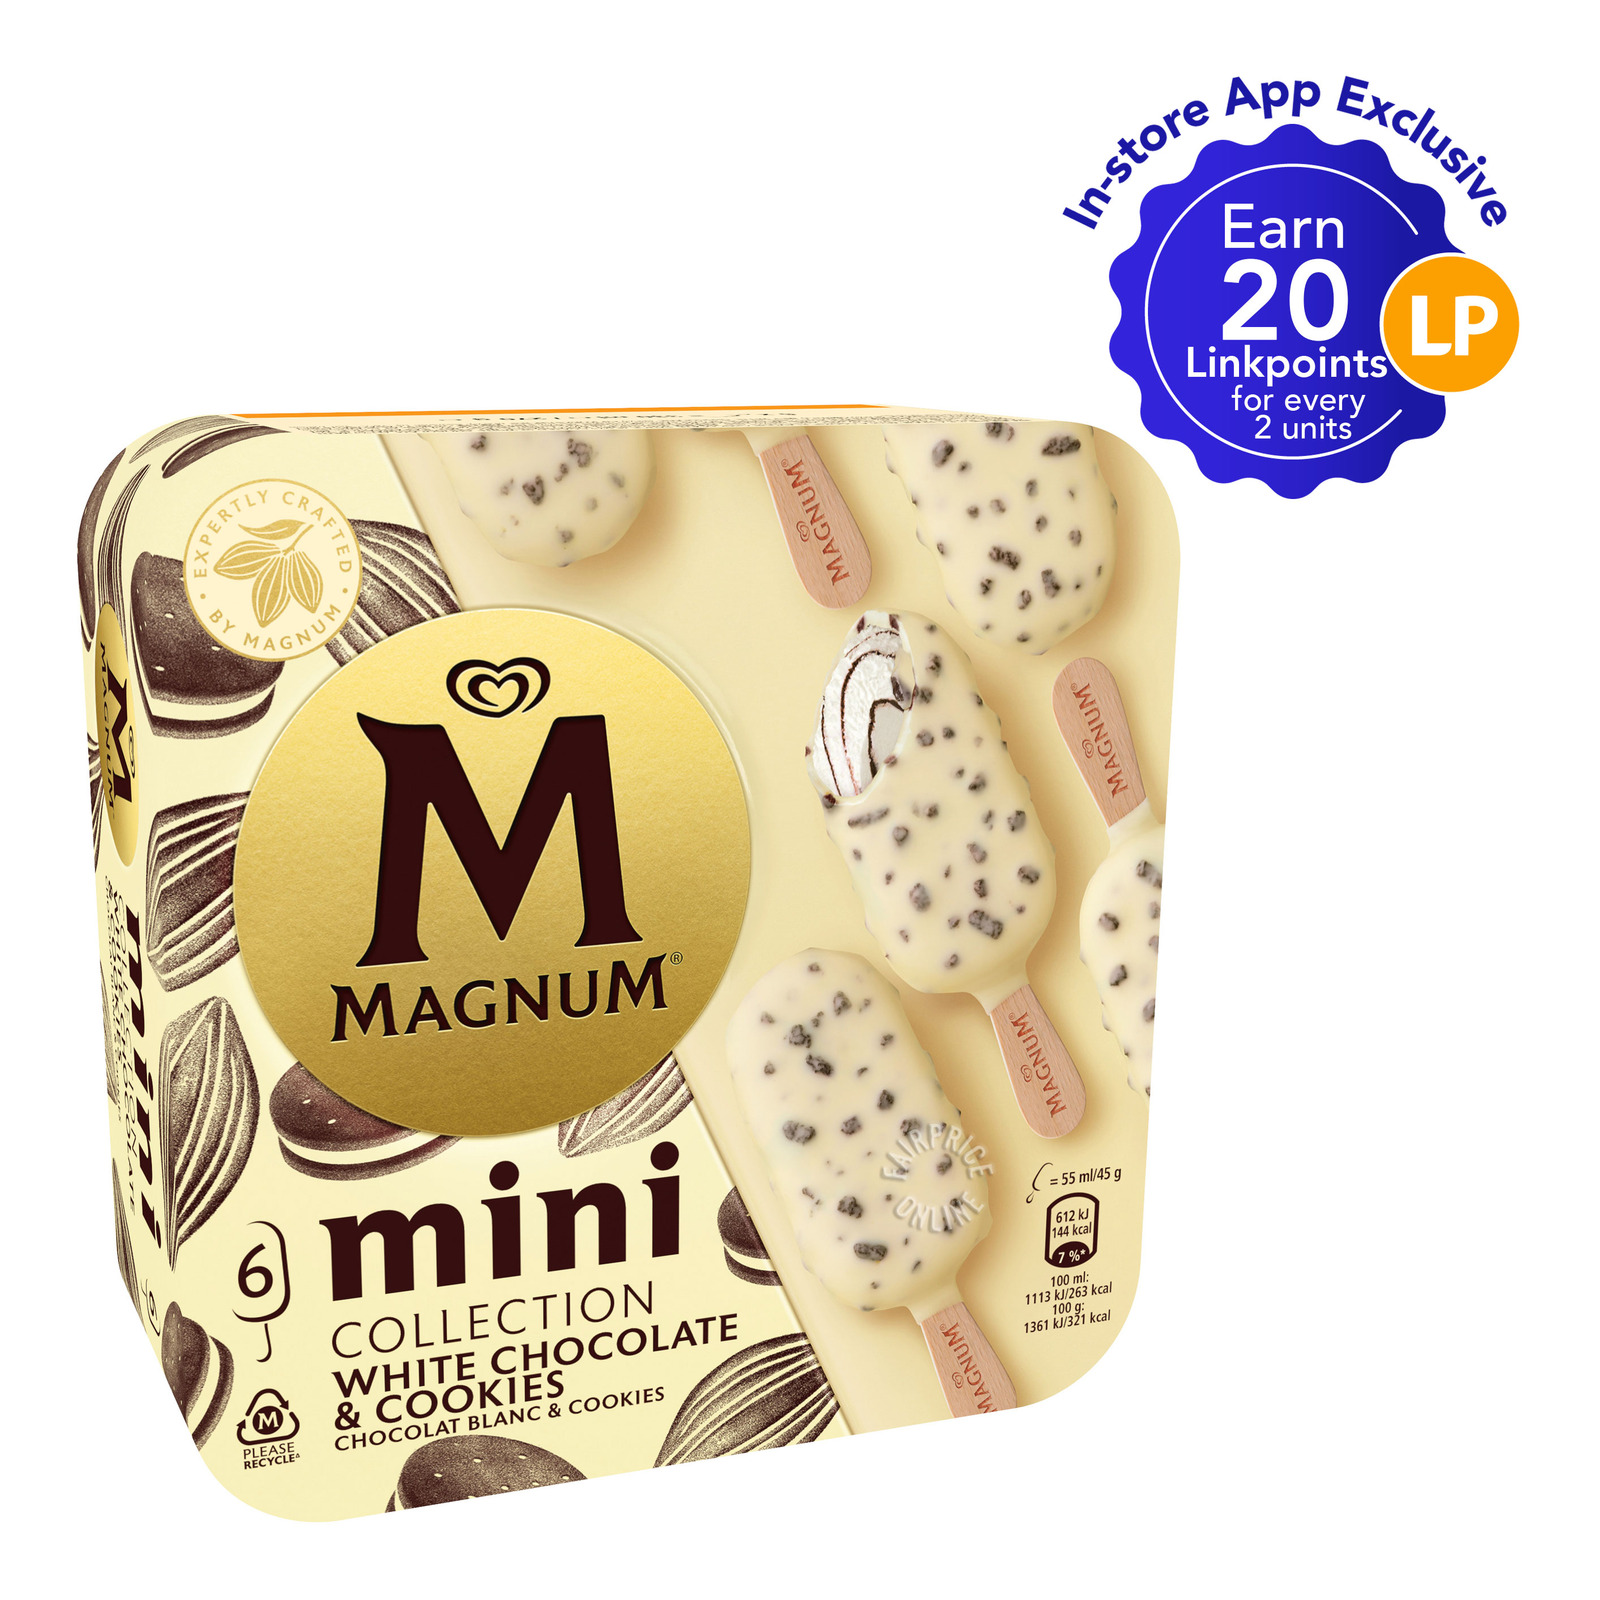 Magnum Mini Ice Cream - White Chocolate & Cookies